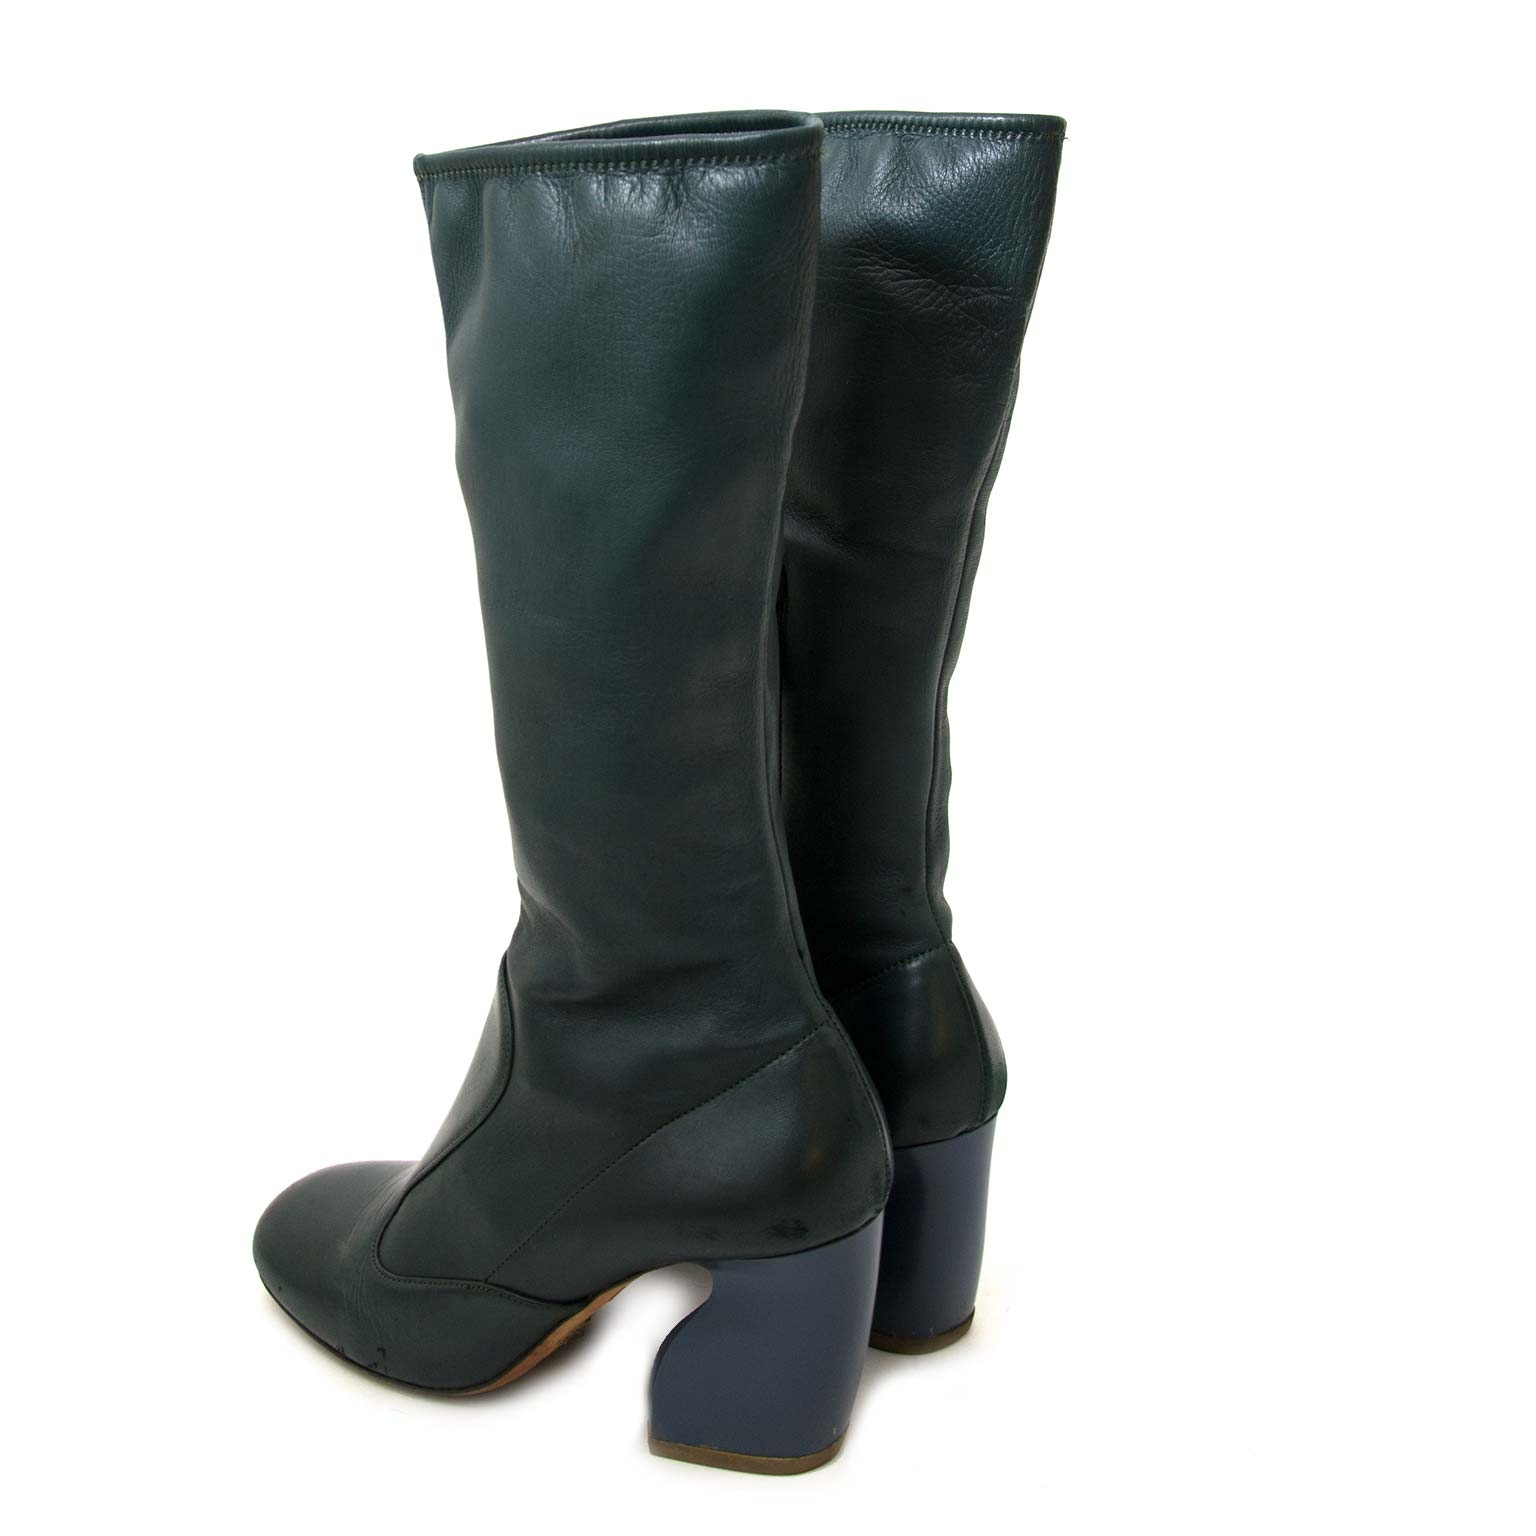 shop safe online secondhand Prada Bicolor Lambskin Mid Calf Boots - size 39